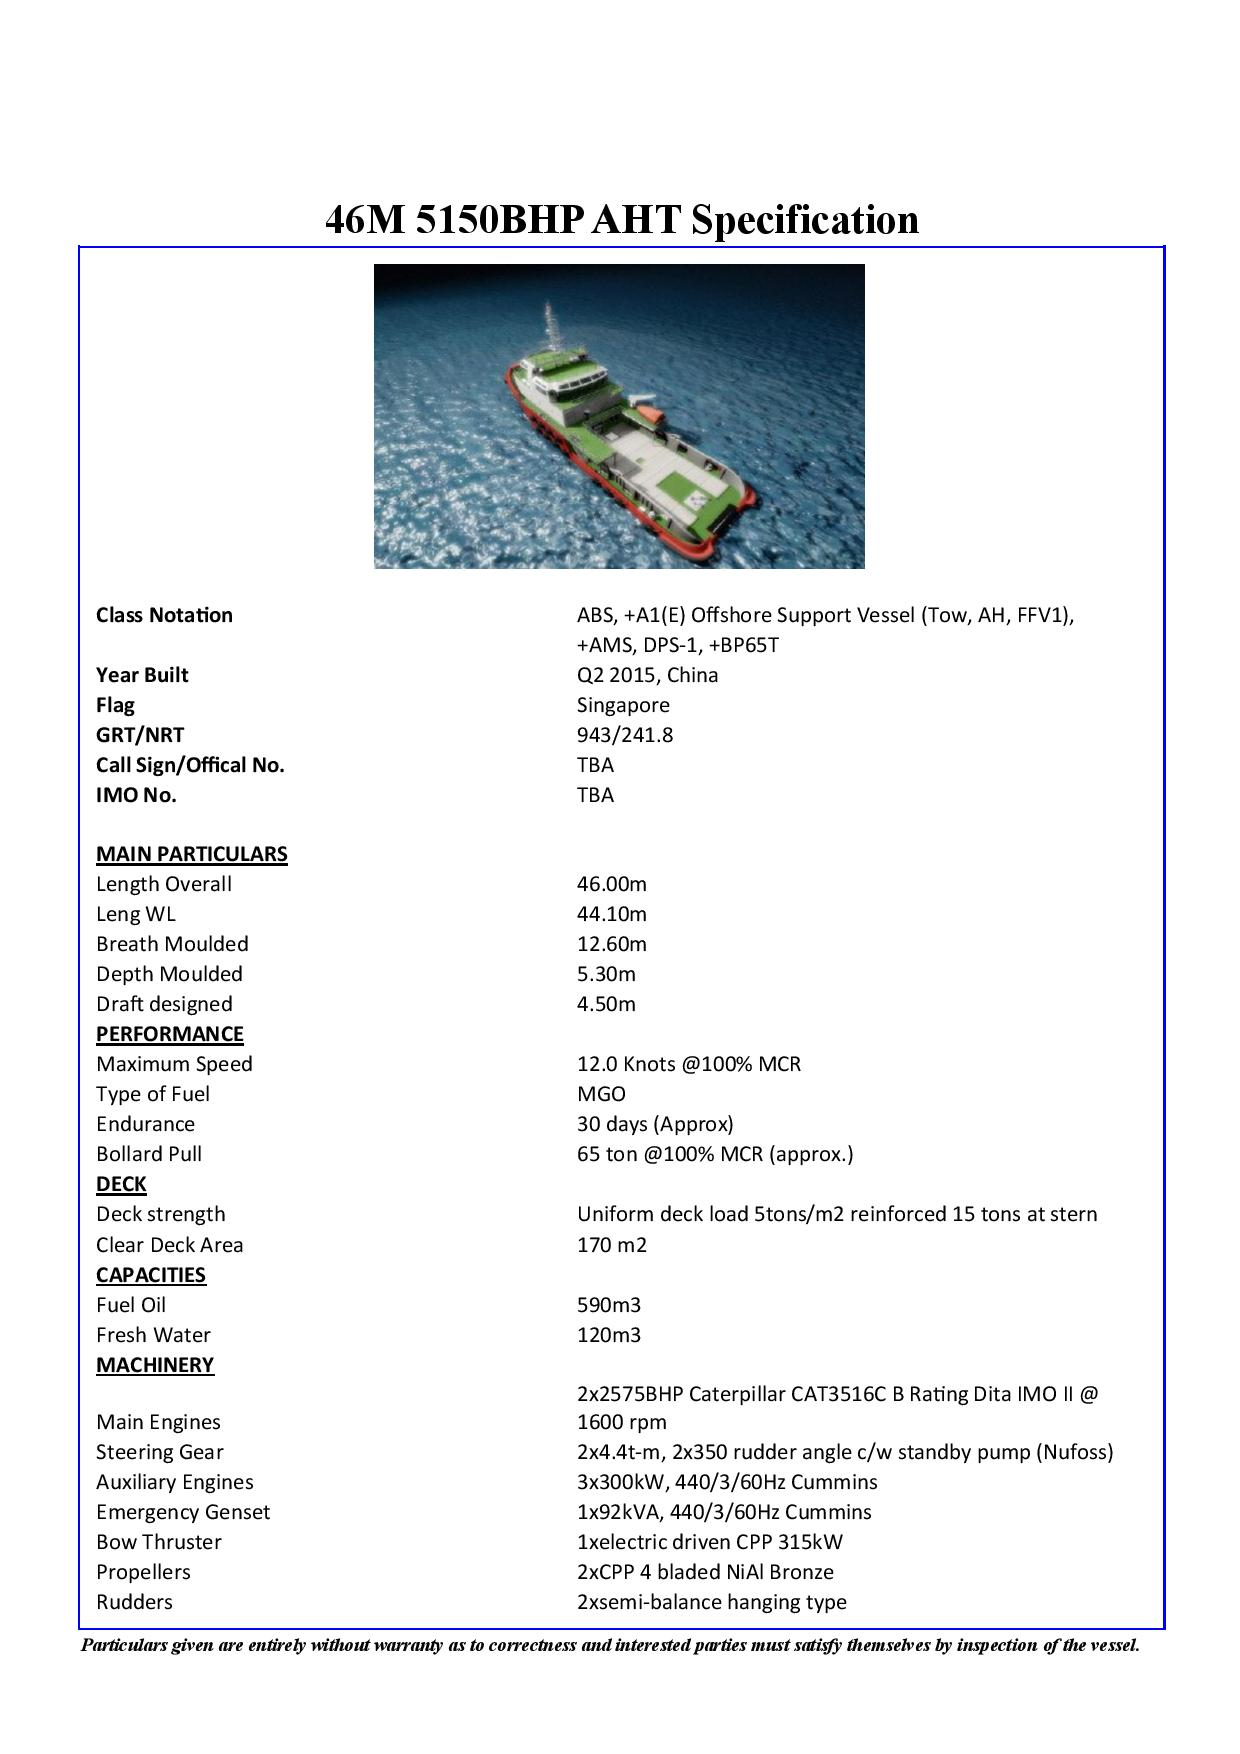 46M 5150BHP AHT For Charter